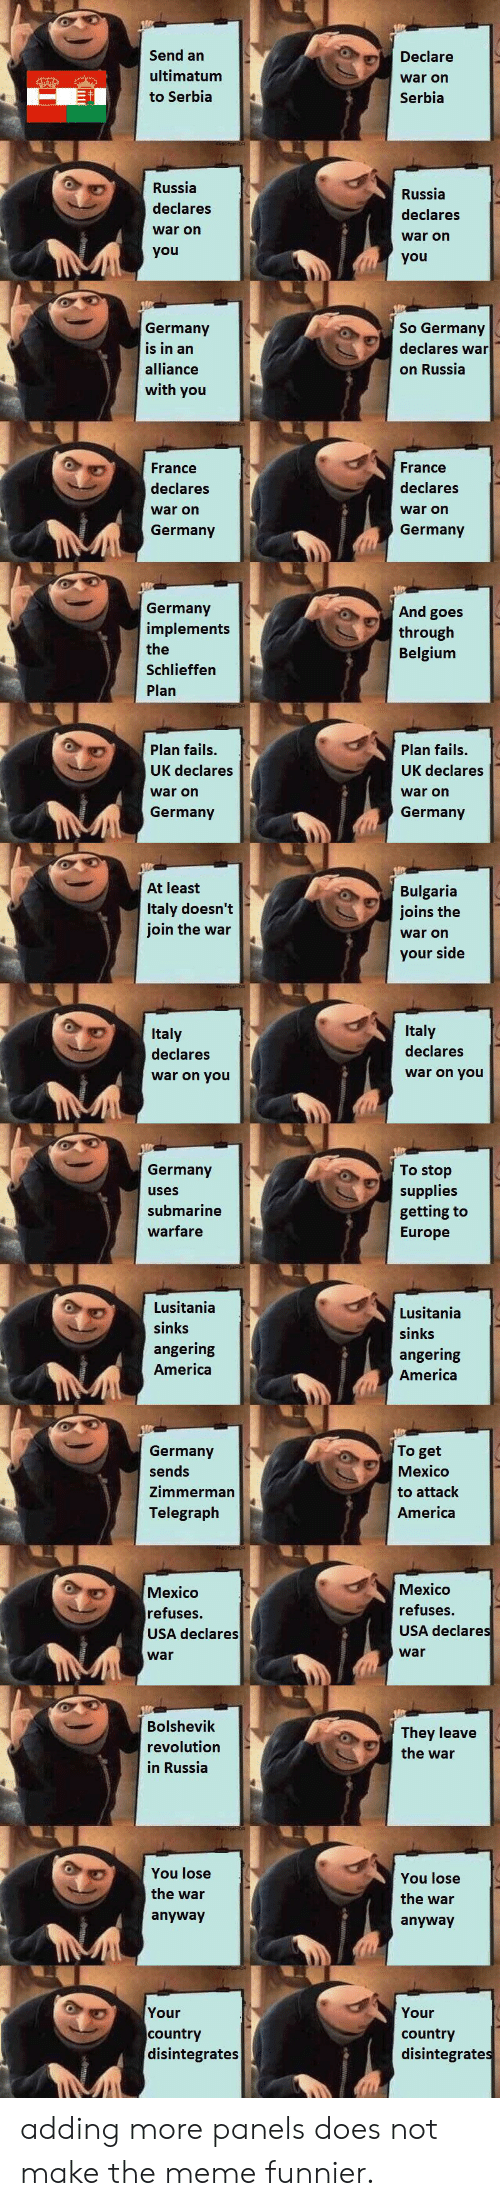 America, Belgium, and Meme: Send an  Declare  ultimatum  war on  to Serbia  Serbia  Russia  Russia  declares  declares  war on  war on  you  you  Germany  is in an  So Germany  declares war  alliance  on Russia  with you  France  France  declares  declares  war on  war on  Germany  Germany  Germany  implements  And goes  through  Belgium  the  Schlieffen  Plan  Plan fails.  Plan fails.  UK declares  UK declares  war on  war on  Germany  Germany  At least  Bulgaria  joins the  Italy doesn't  join the war  war on  your side  Italy  Italy  declares  declares  war on you  war on you  To stop  Germany  supplies  getting to  Europe  uses  submarine  warfare  Lusitania  Lusitania  sinks  sinks  angering  angering  America  America  To get  Germany  sends  Mexico  Zimmerman  to attack  America  Telegraph  Mexico  Mexico  refuses.  refuses.  USA declares  USA declares  war  war  Bolshevik  They leave  revolution  the war  in Russia  You lose  You lose  the war  the war  anyway  anyway  Your  Your  country  disintegrates  country  disintegrates adding more panels does not make the meme funnier.